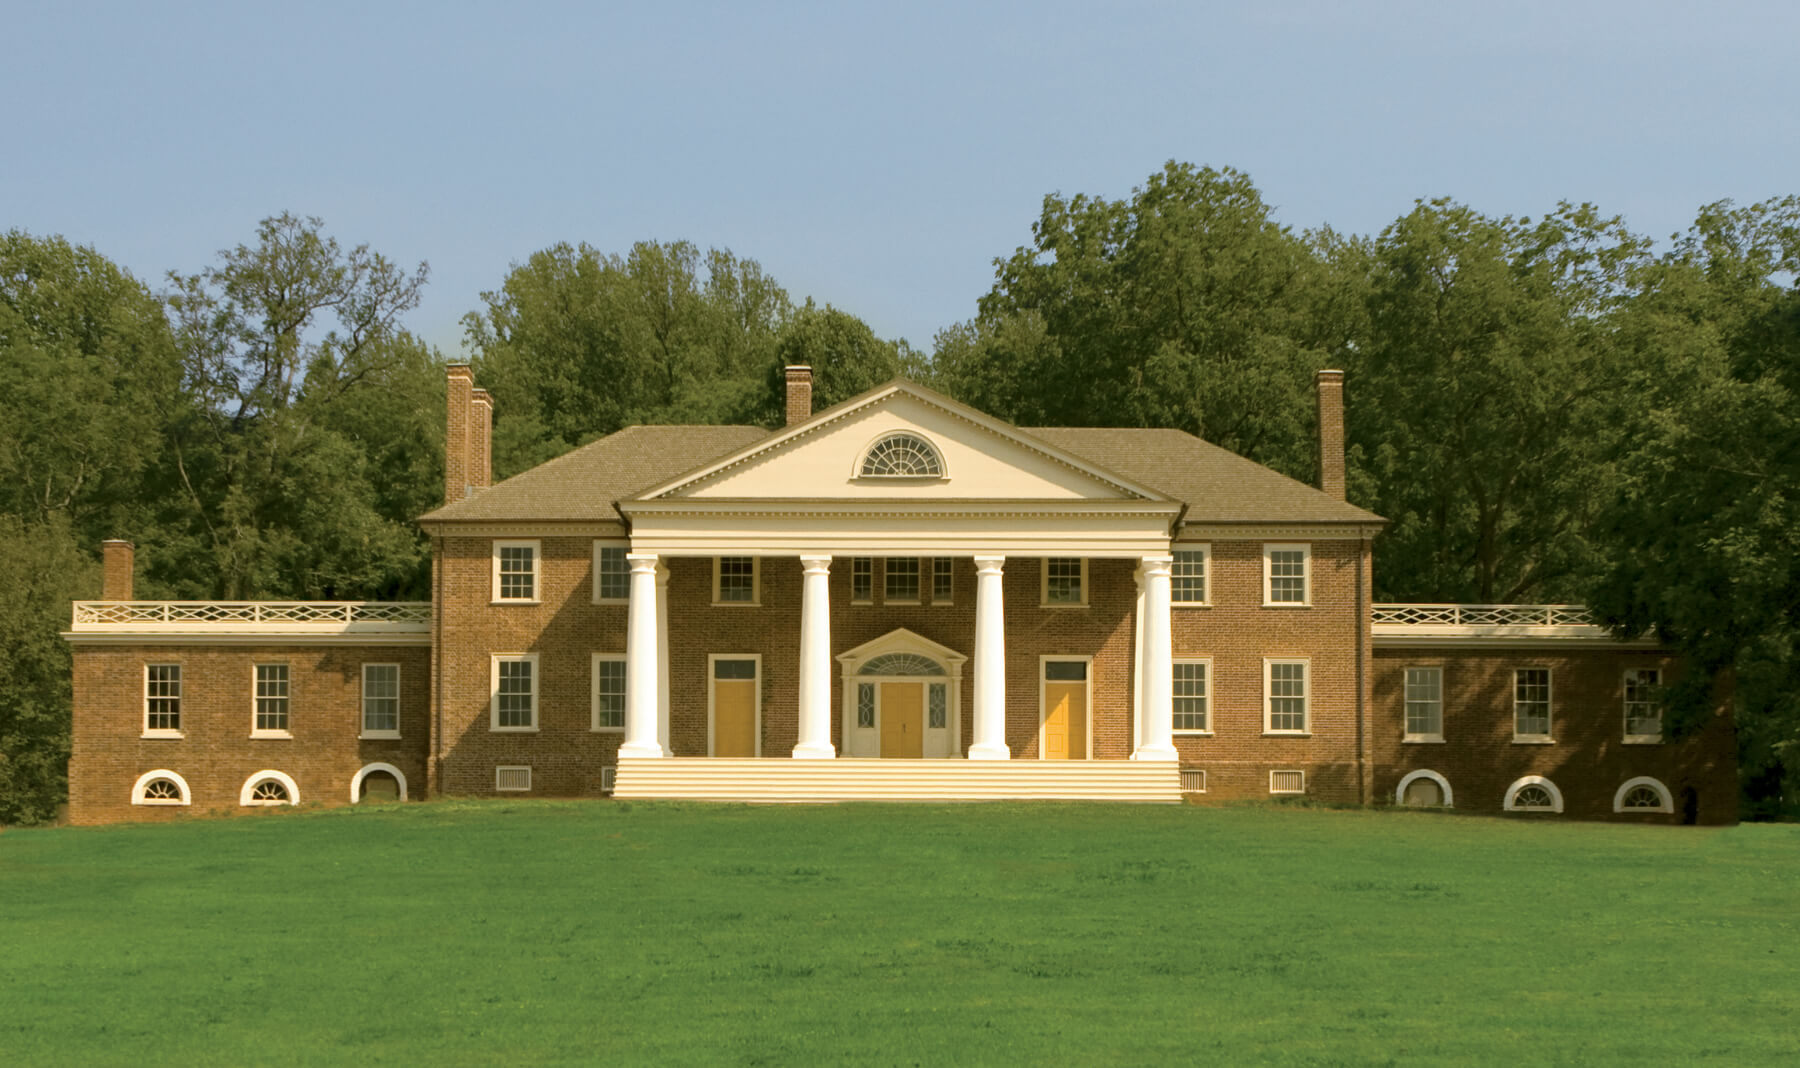 James Madison's Montpelier. Federal Highway Admin, DOT. Public Domain.